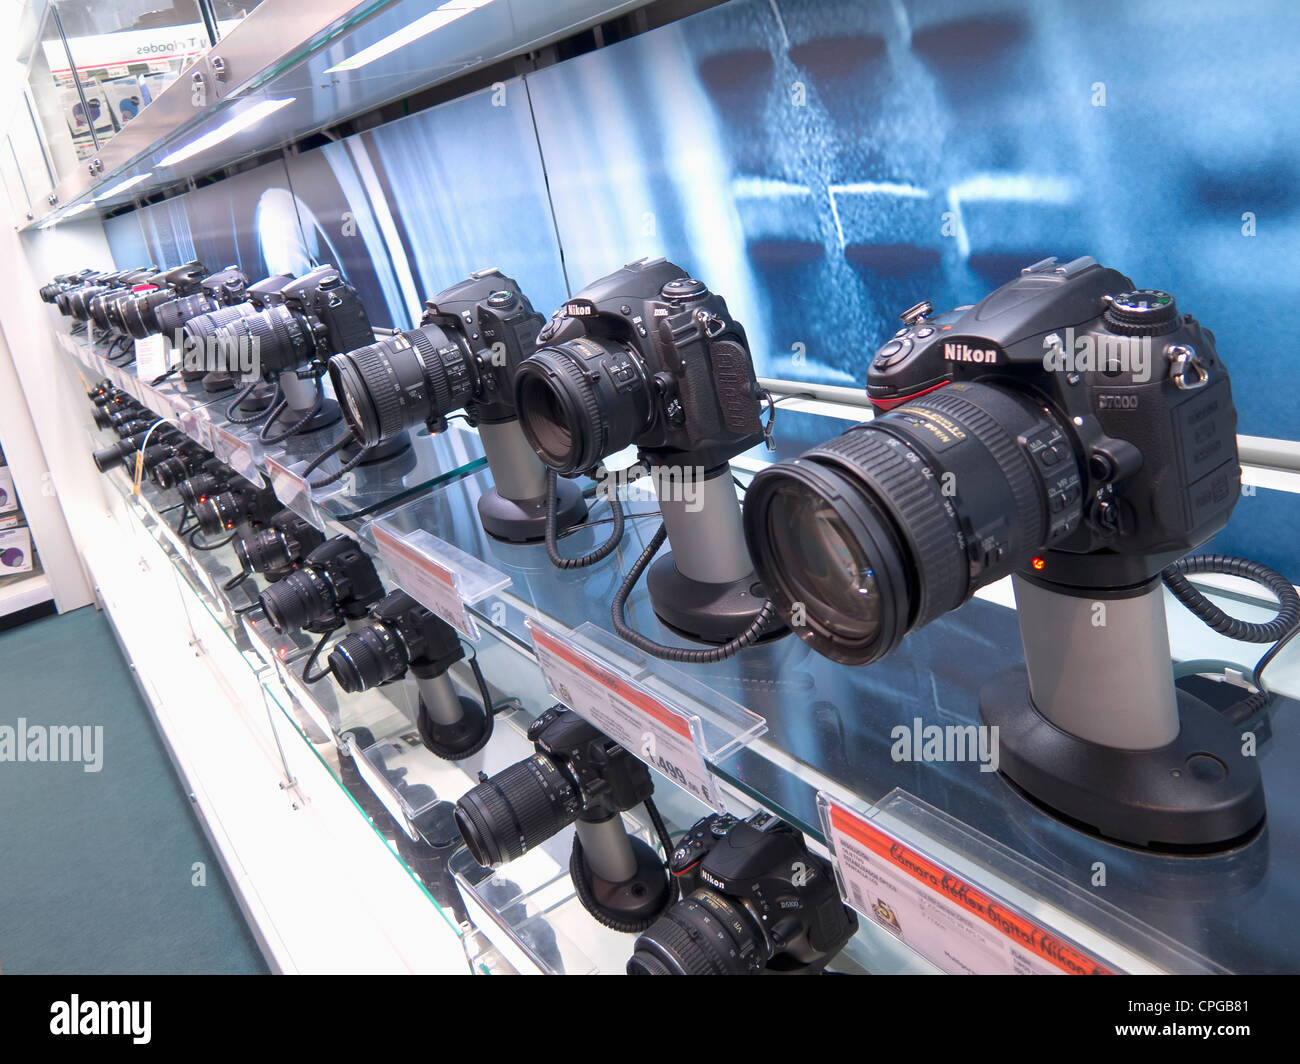 Rows of digital SLR cameras for sale in the FNAC outlet, La Cañada shopping centre, Marbella, Spain - Stock Image